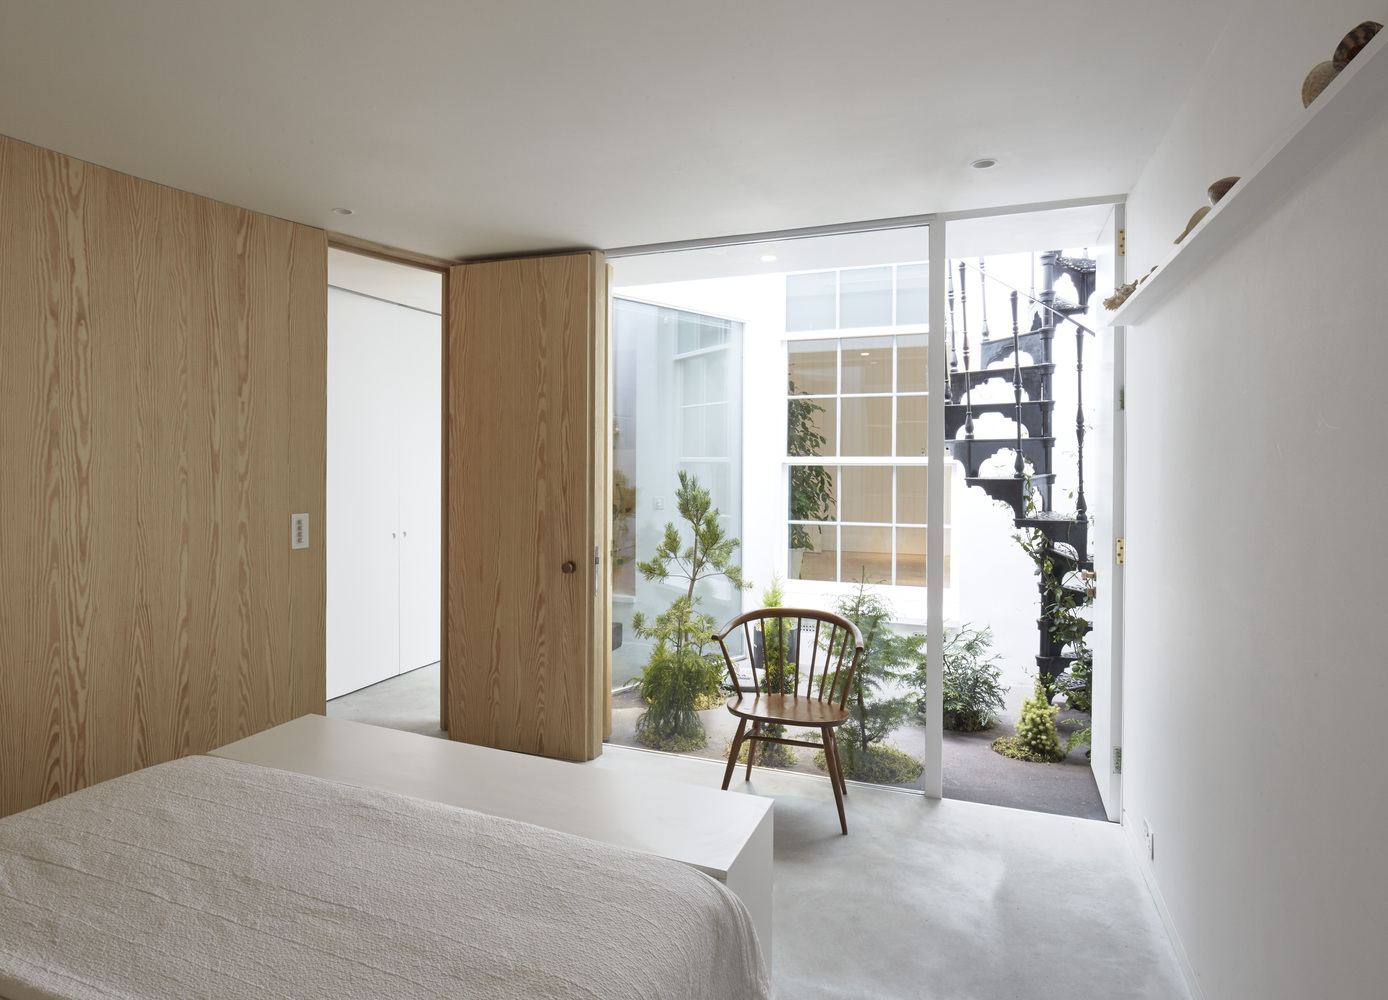 晴雨屋 Sun Rain Room丨Tonkin Liu Architects